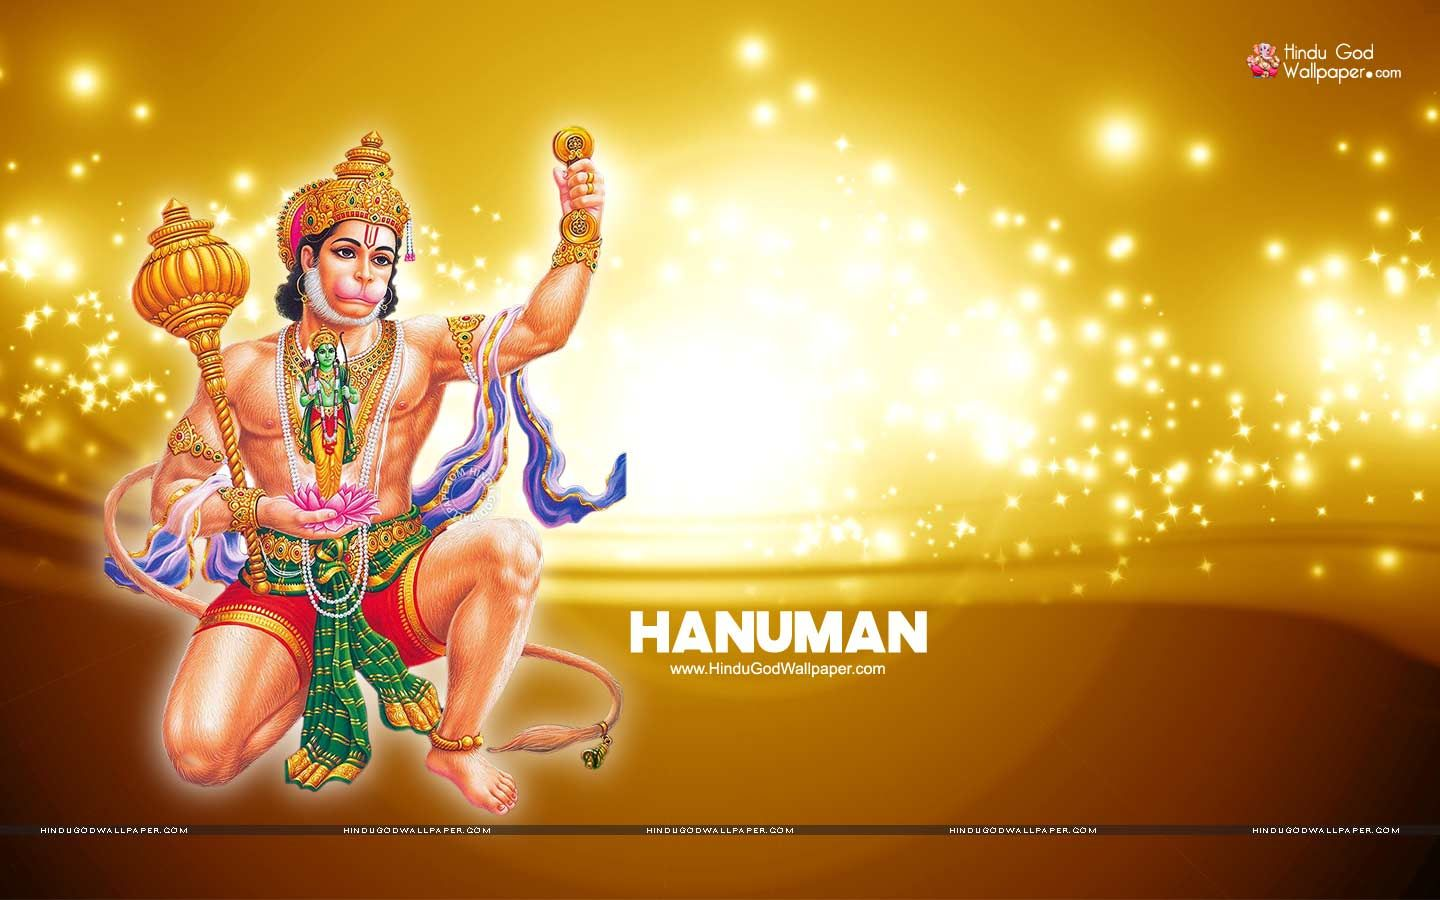 Lord Hanuman Hd Wallpaper Full Size Free Downloads With High